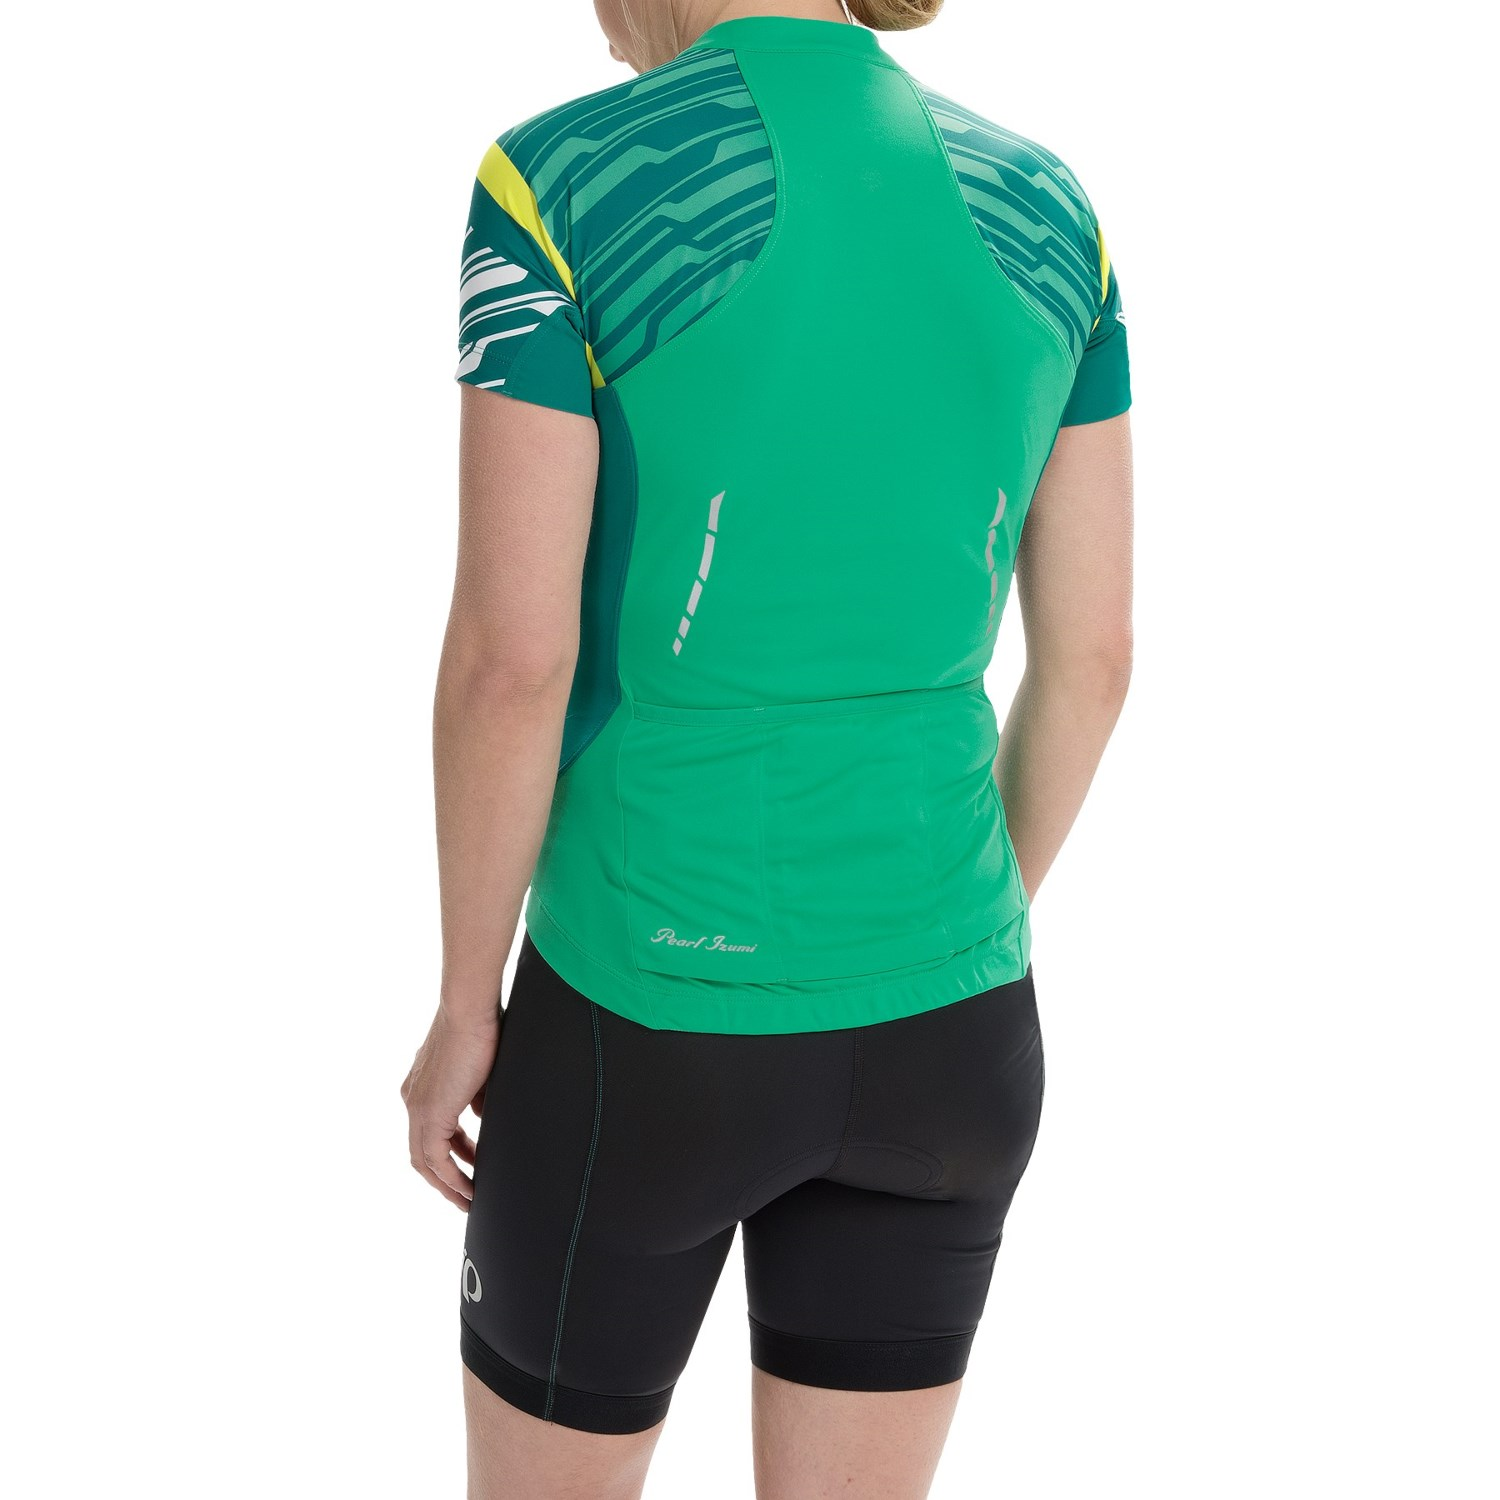 Pearl izumi elite cycling jersey for women save 76 for Pearl izumi cycling shirt